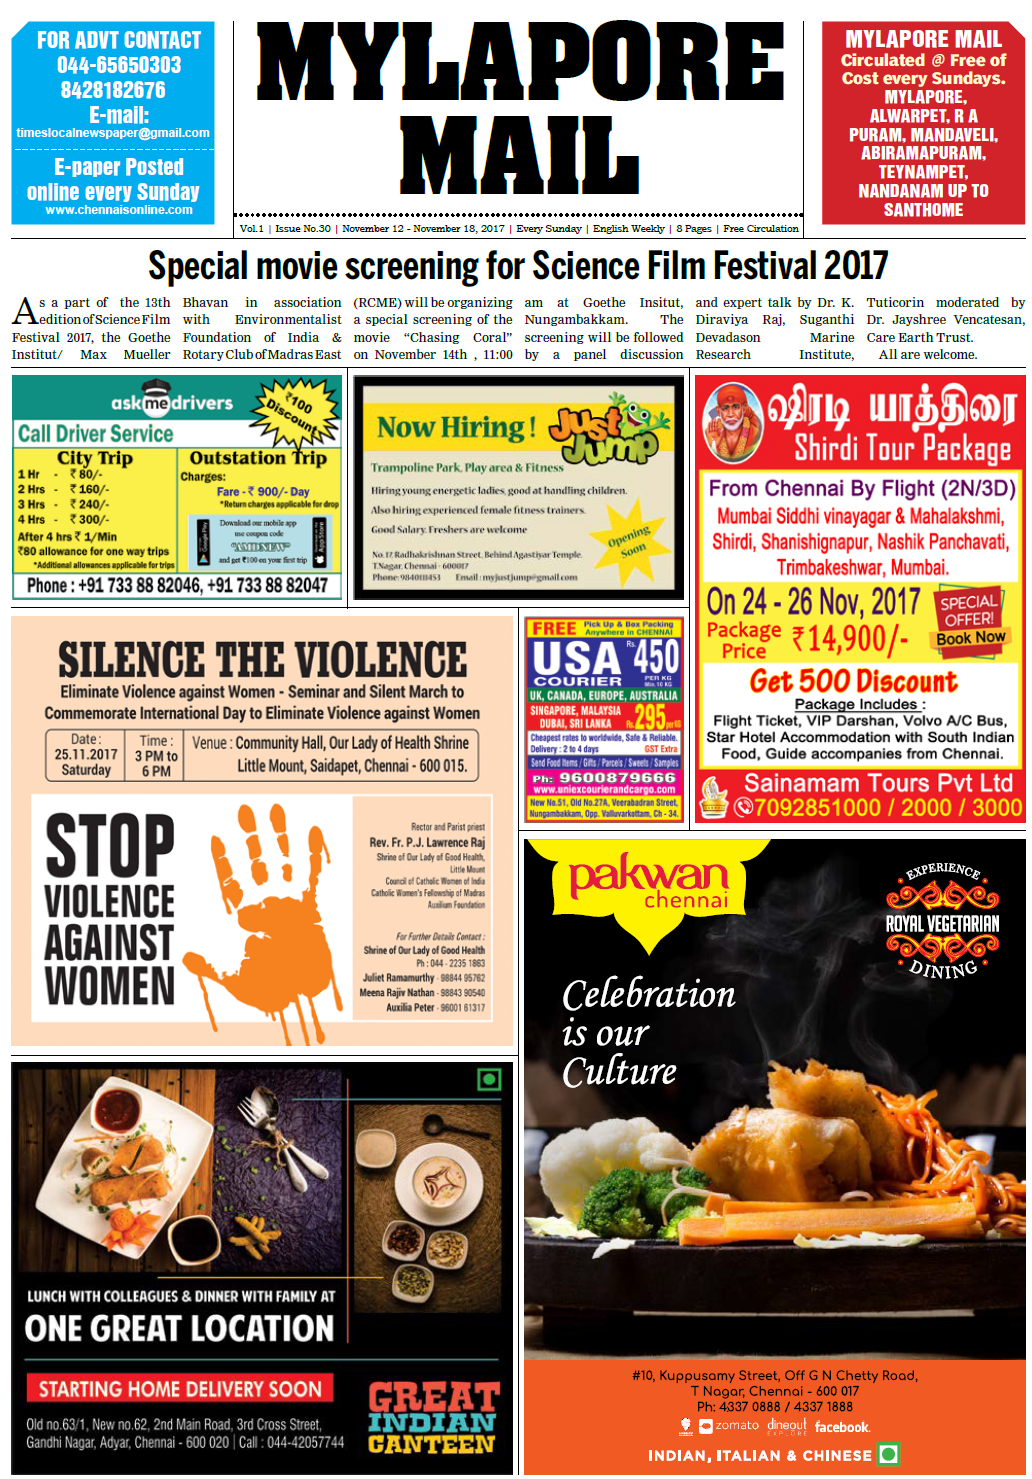 Online paper writers in chennai times